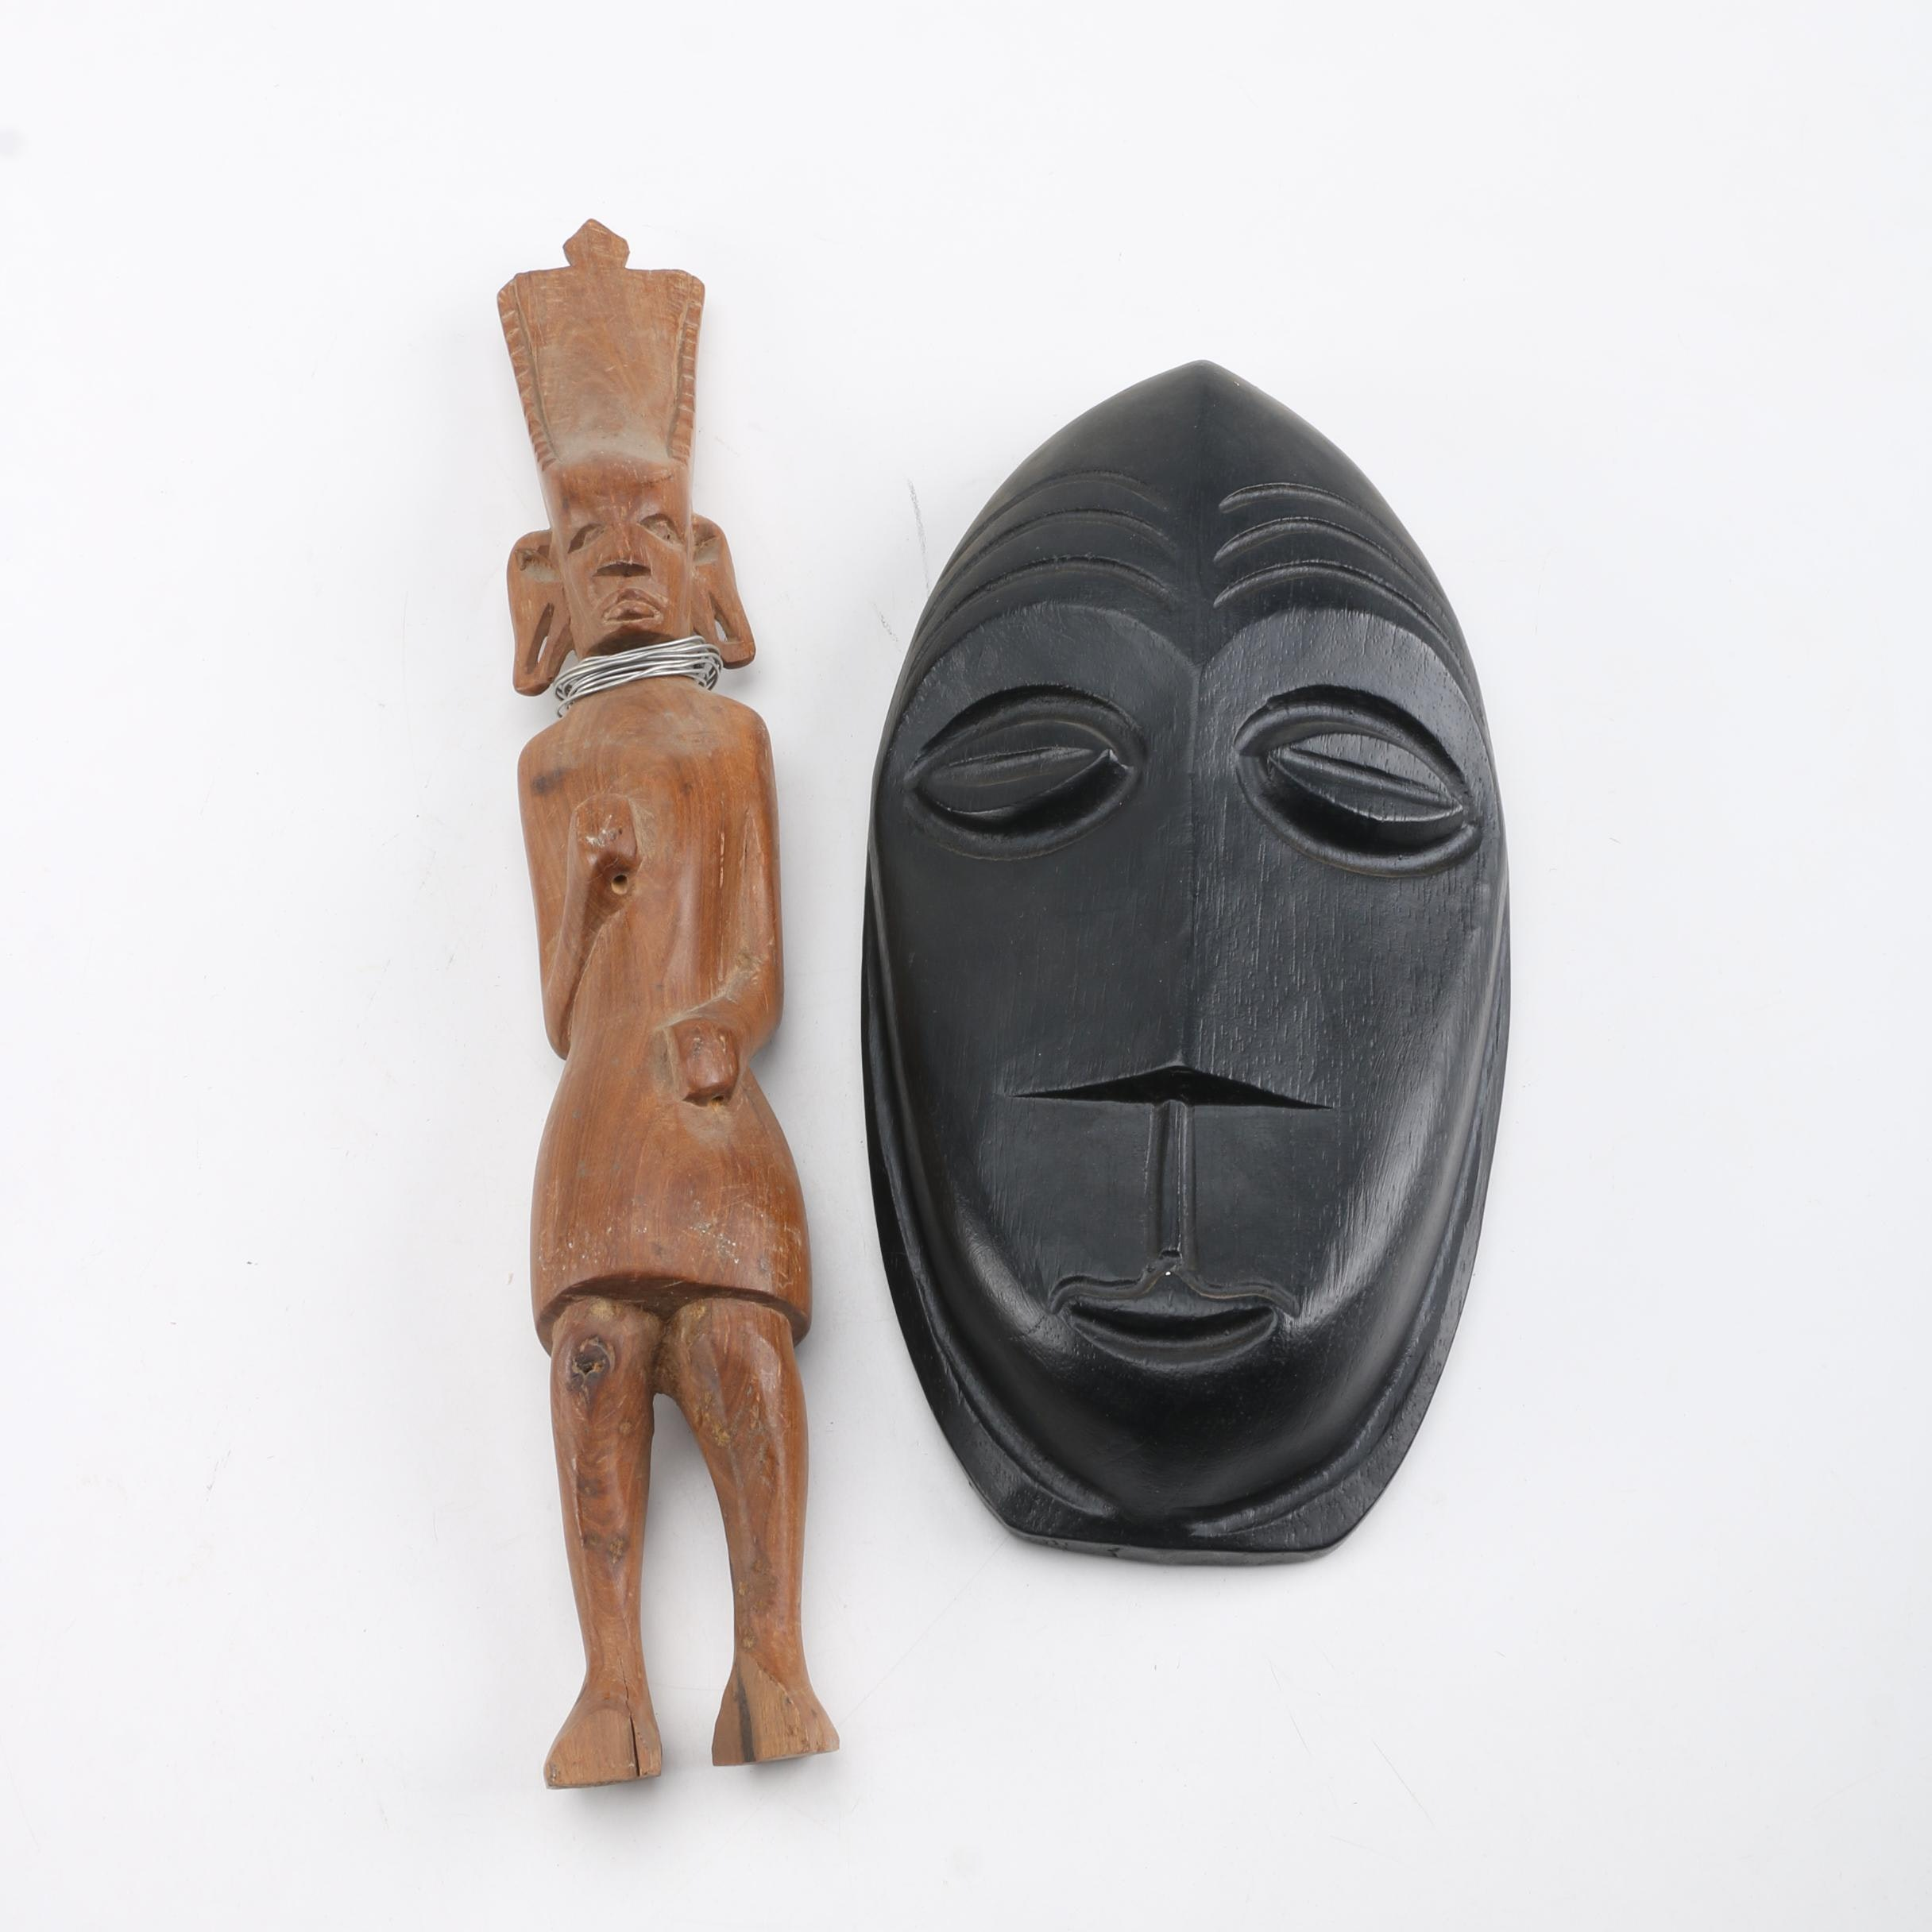 Carved Wood Sculpture and Mask